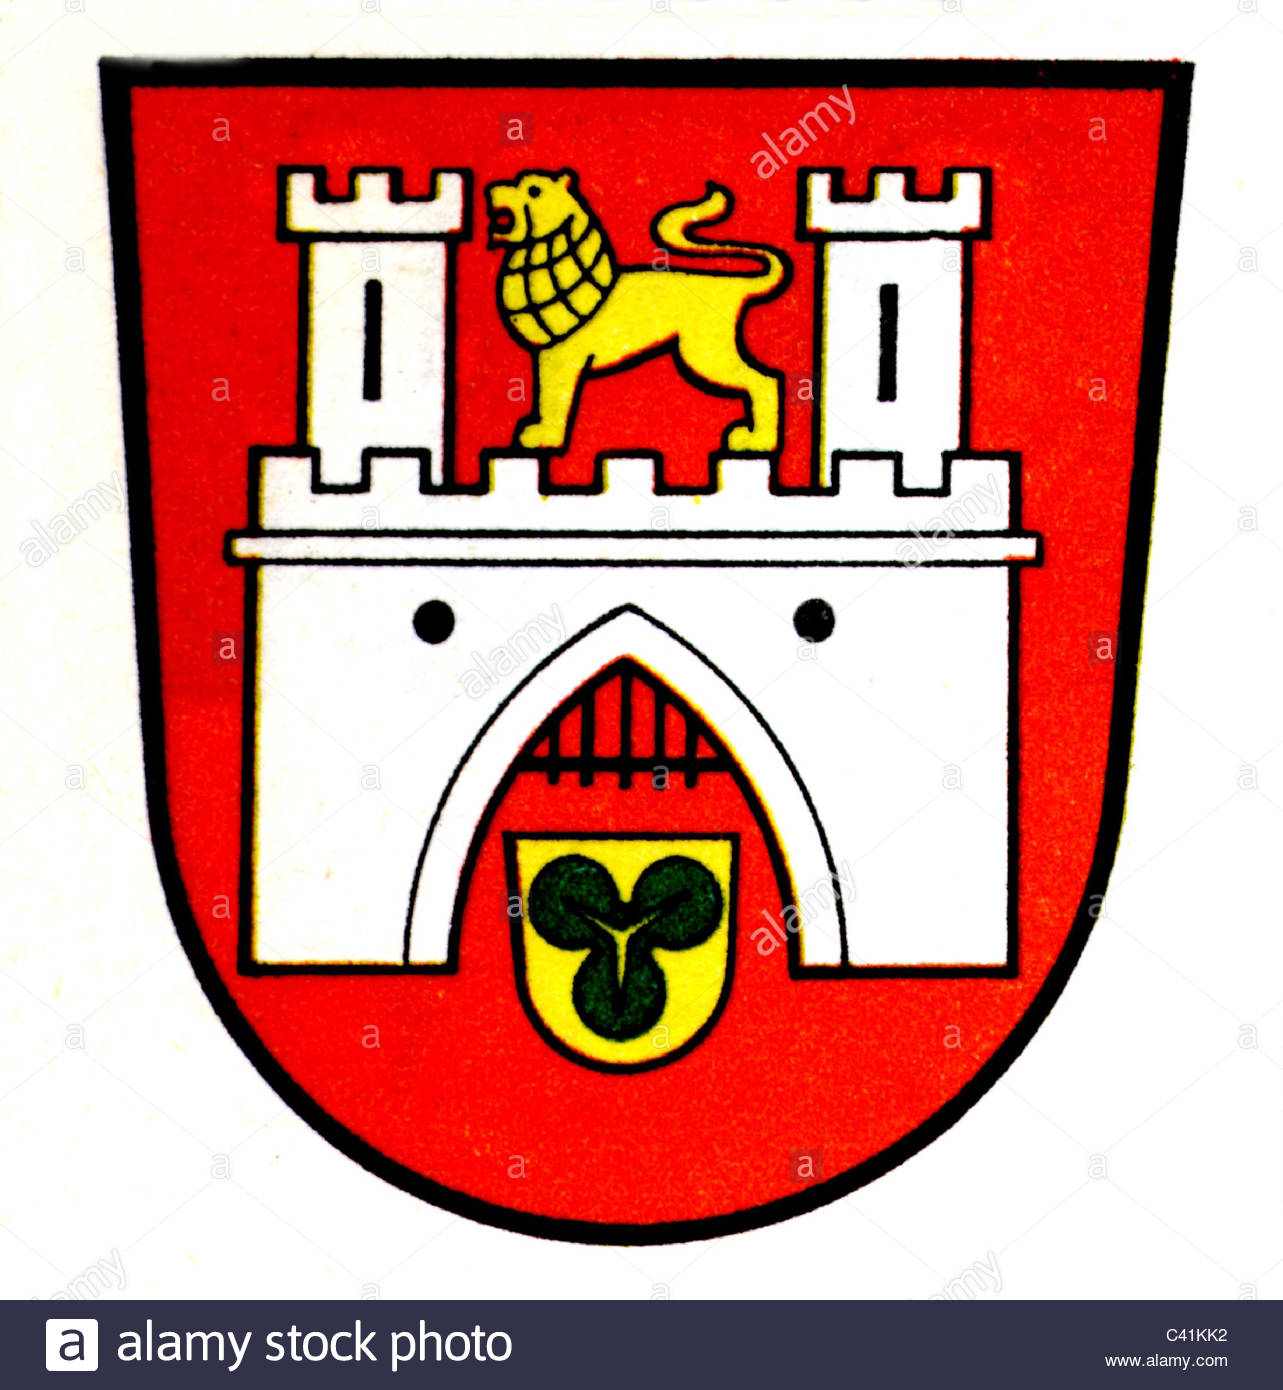 1283x1390 Coat Of Arms Emblems, Hanover, City Arms, Lower Saxony, Germany